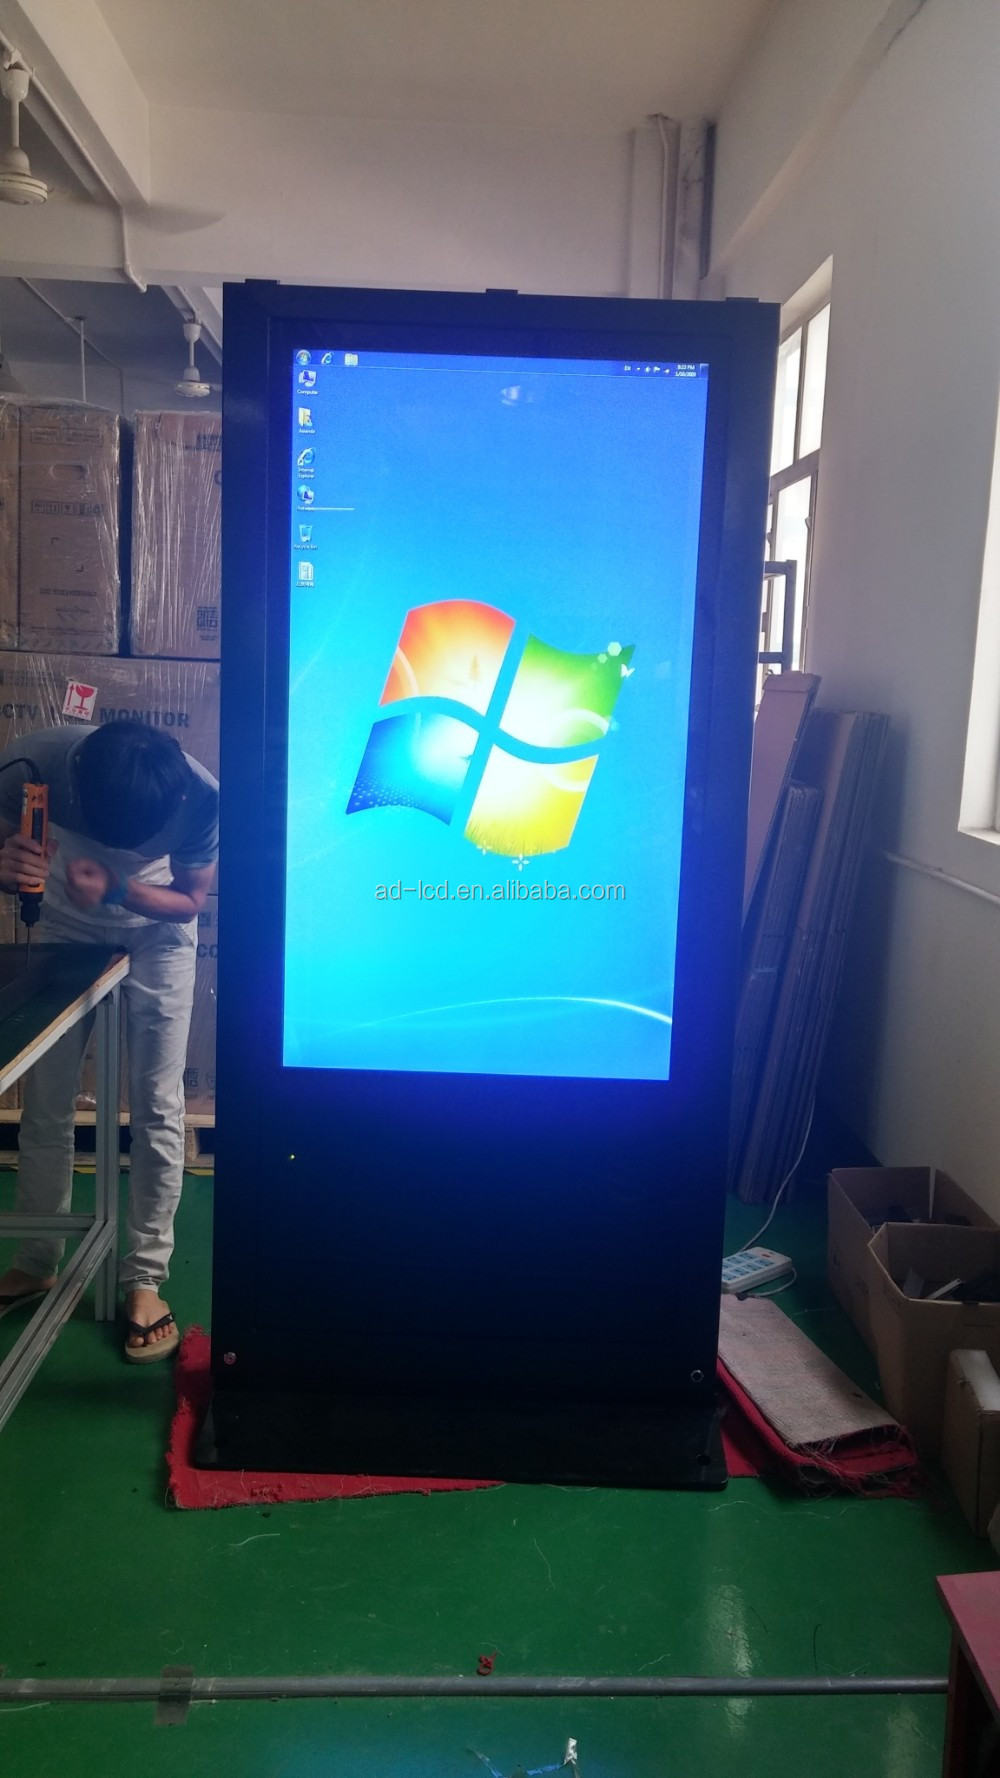 Waterproof dust-proof IP65 High brightness lcd monitor outdoor digital advertising with AR glass and air conditioner cooling